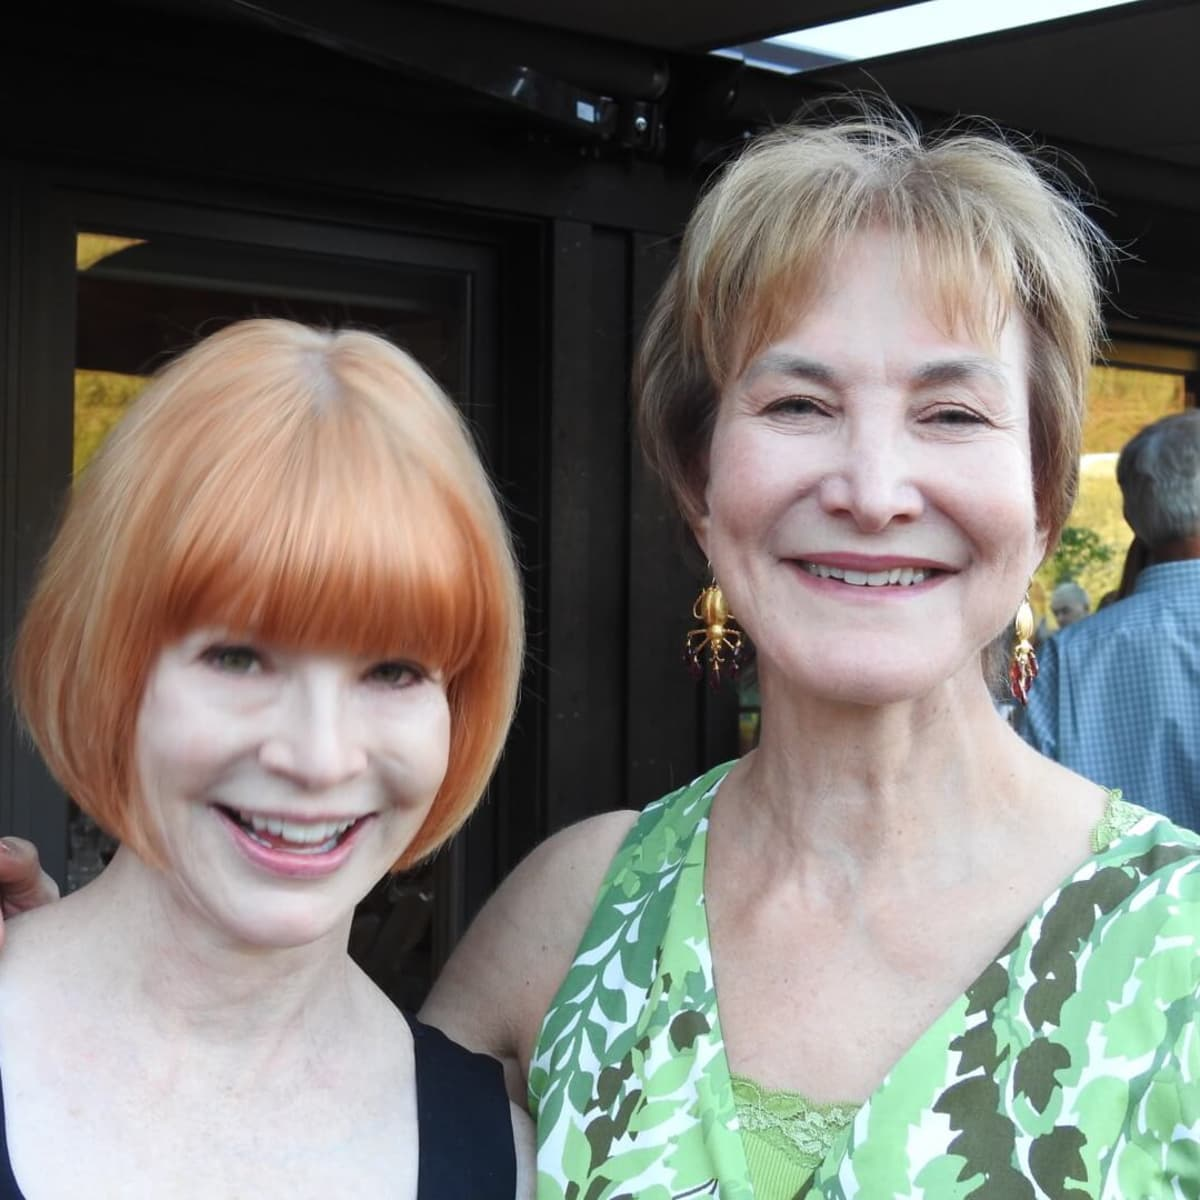 Kathy Dockry and Julia Gregory, both former Houstonians with strong ties to the city